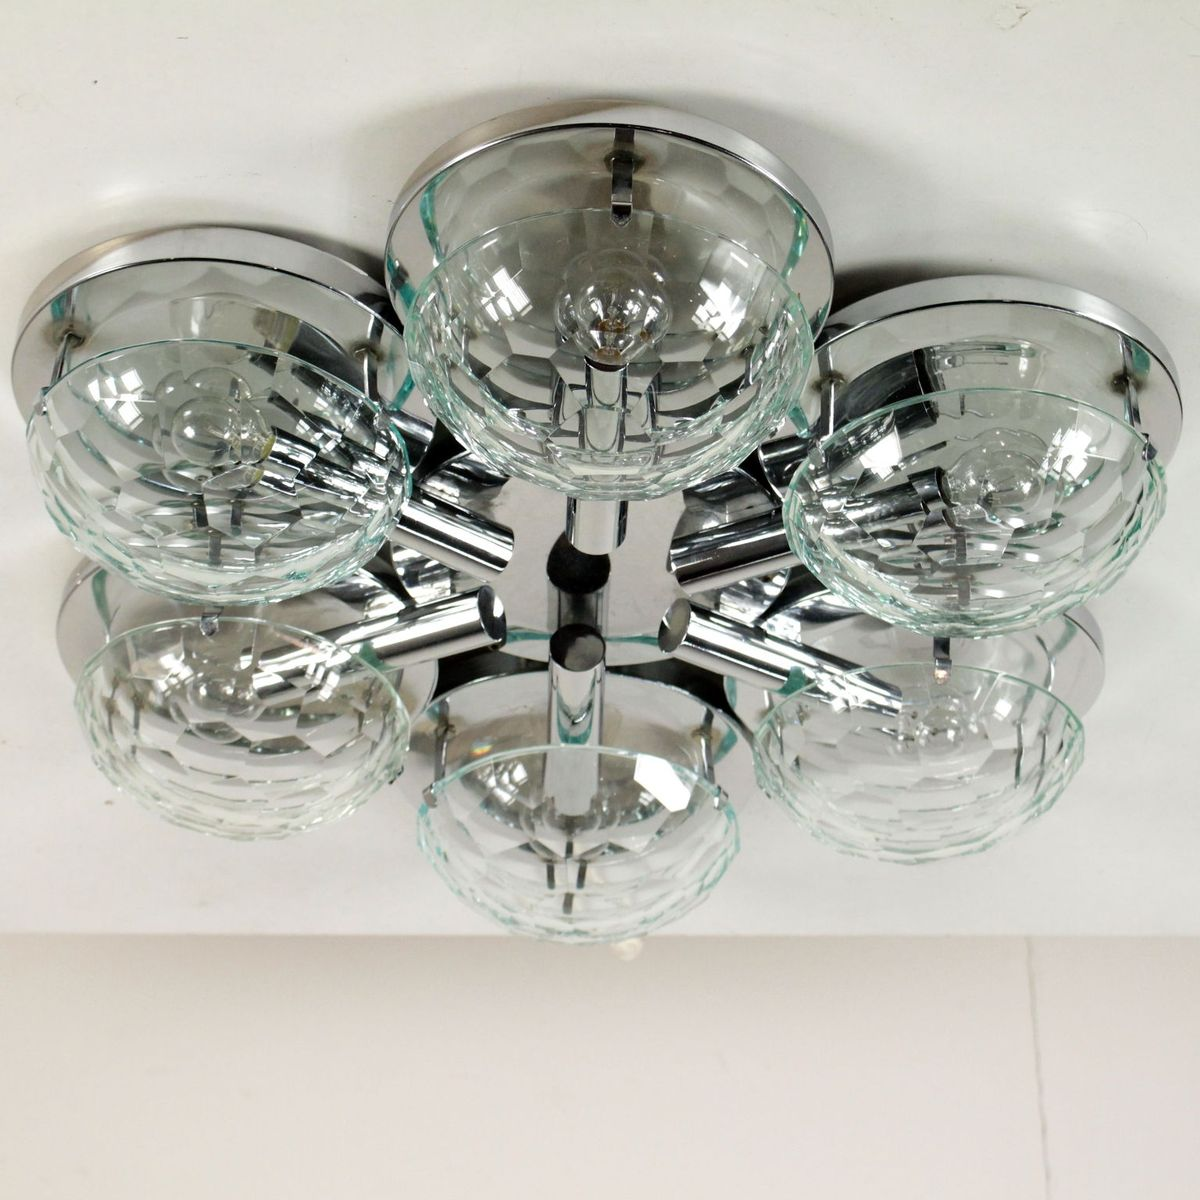 Wall Lamp in Chromed Metal & Glass, 1960s for sale at Pamono